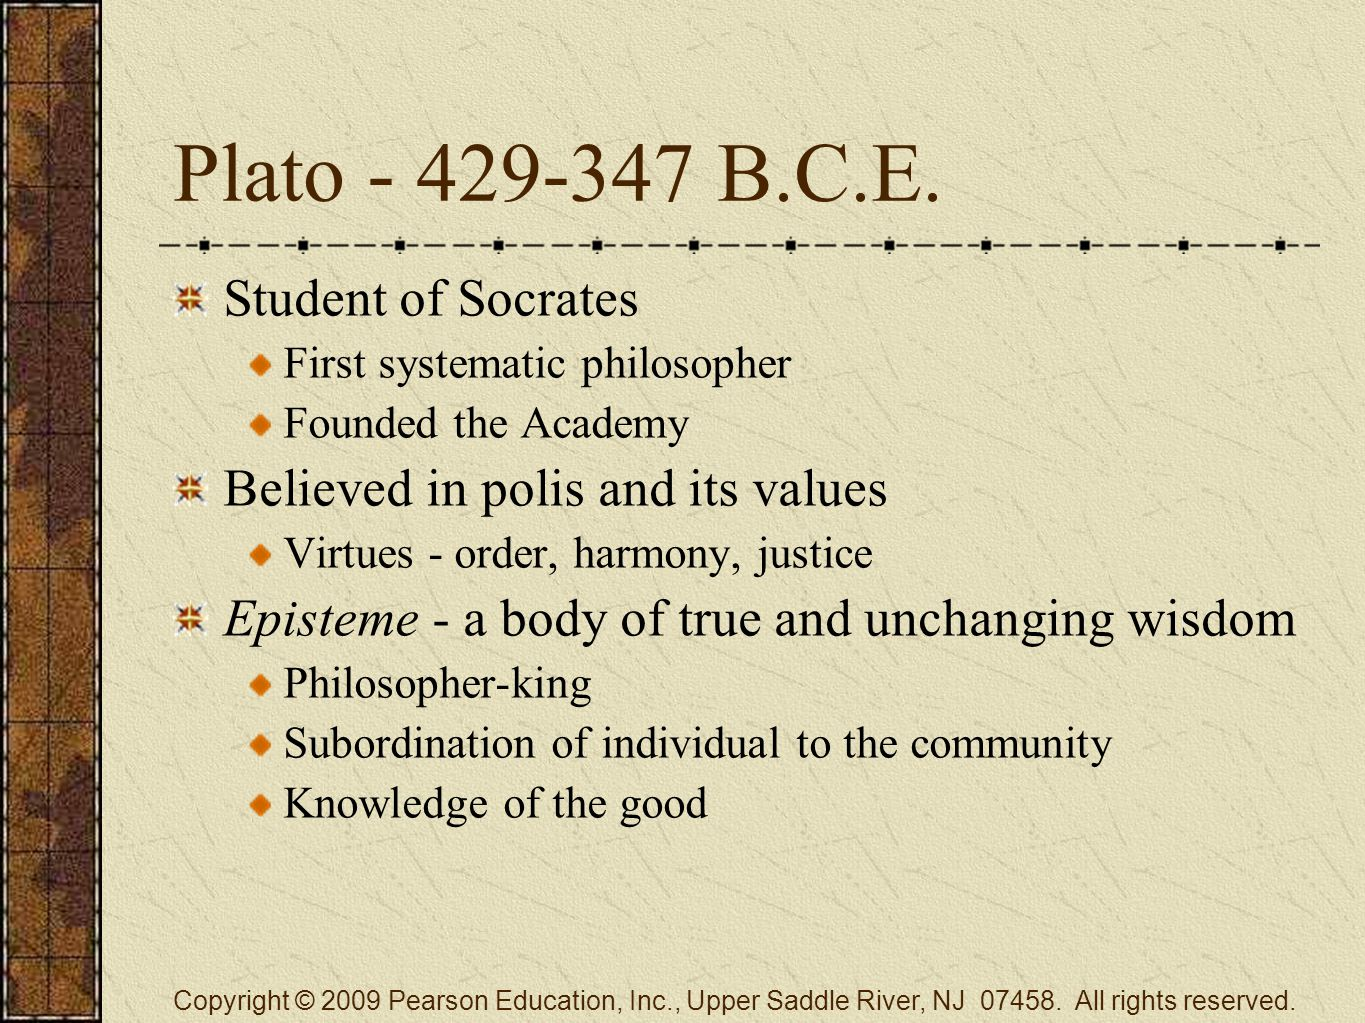 Plato - 429-347 B.C.E. Student of Socrates First systematic philosopher Founded the Academy Believed in polis and its values Virtues - order, harmony,